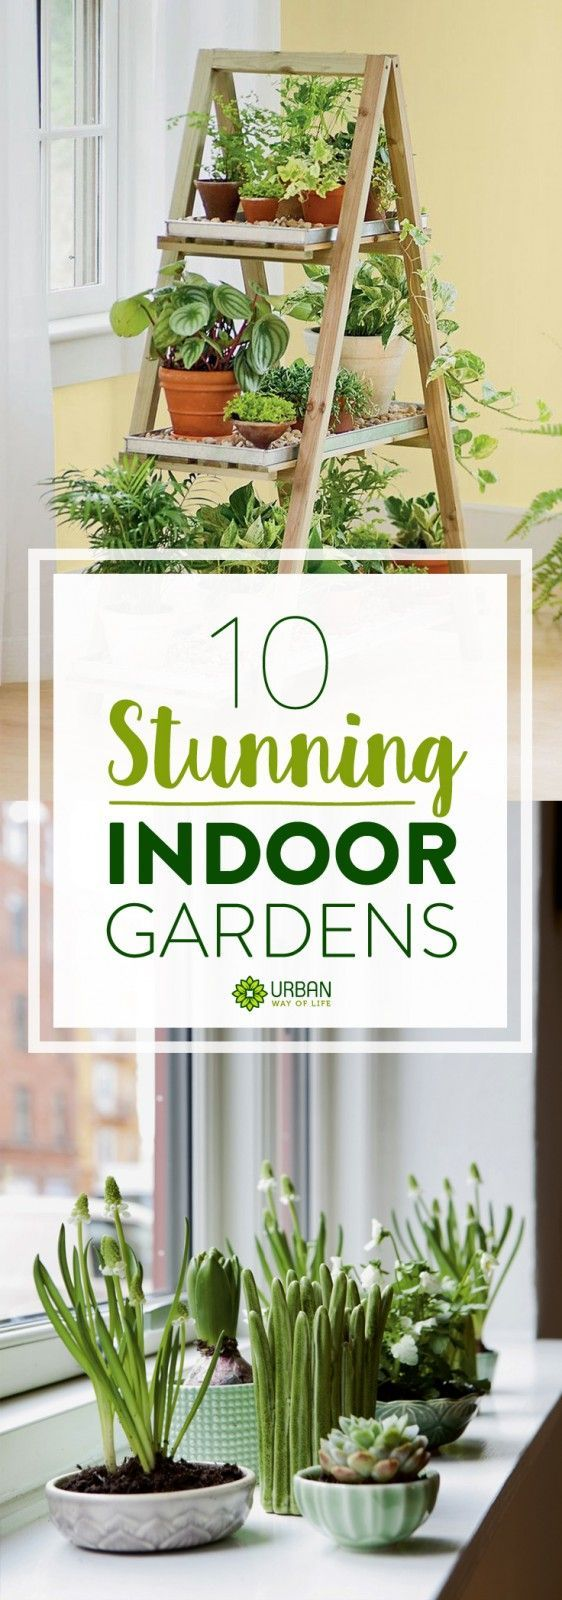 Indoor Gardening Ideas | DIY Inspiration for your apartment